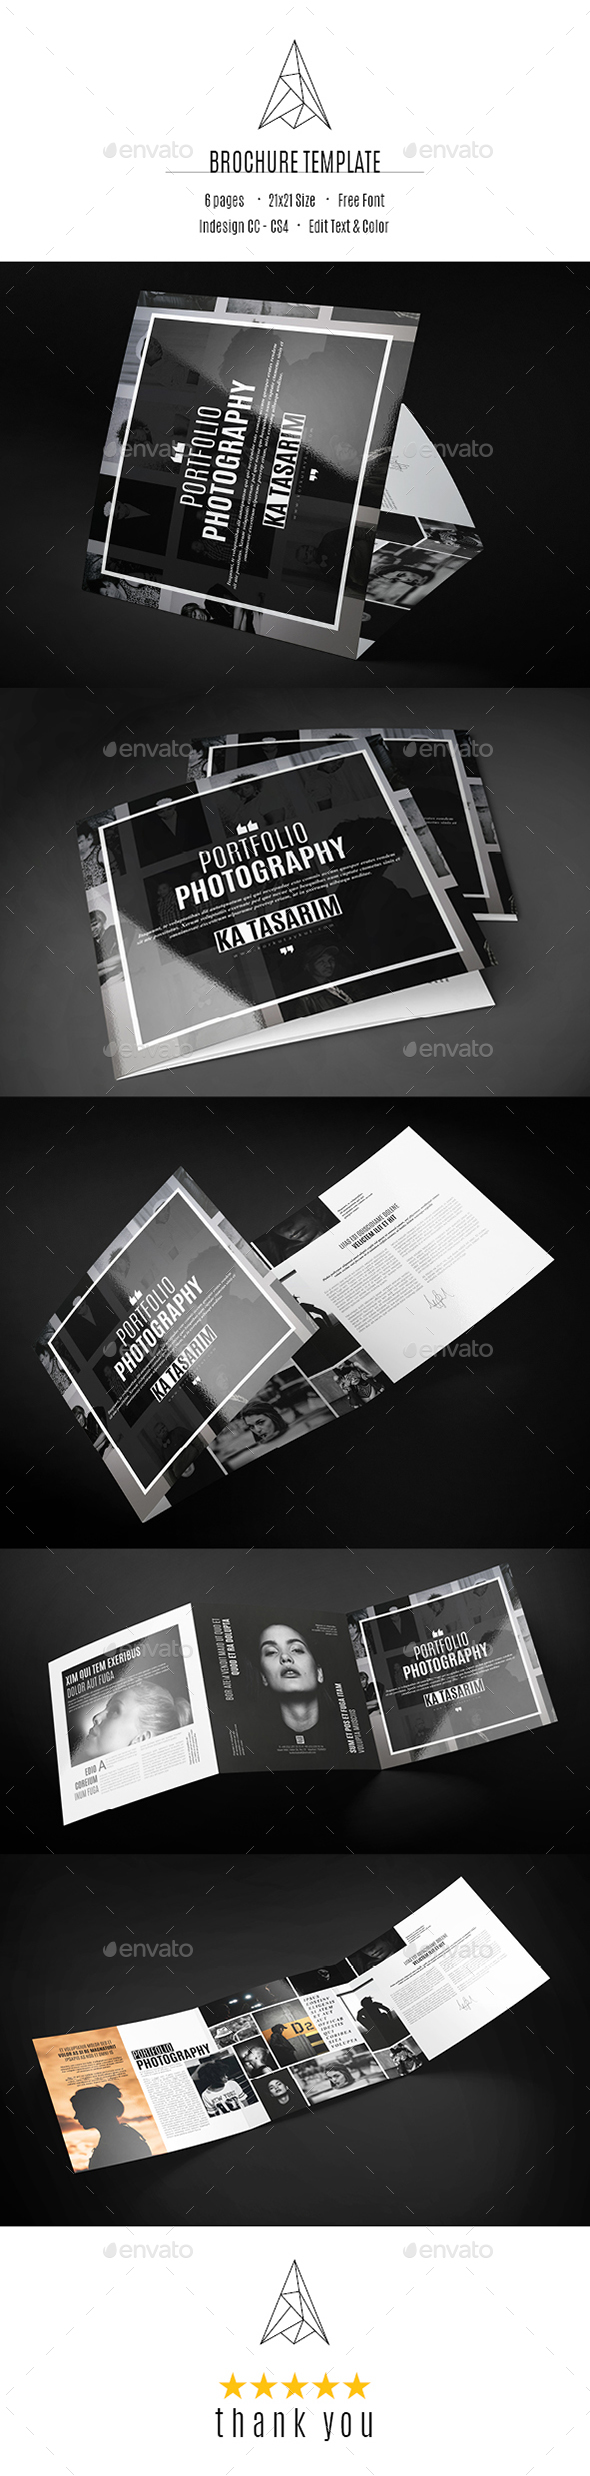 Portfolio Photography Square Trifold - Brochures Print Templates